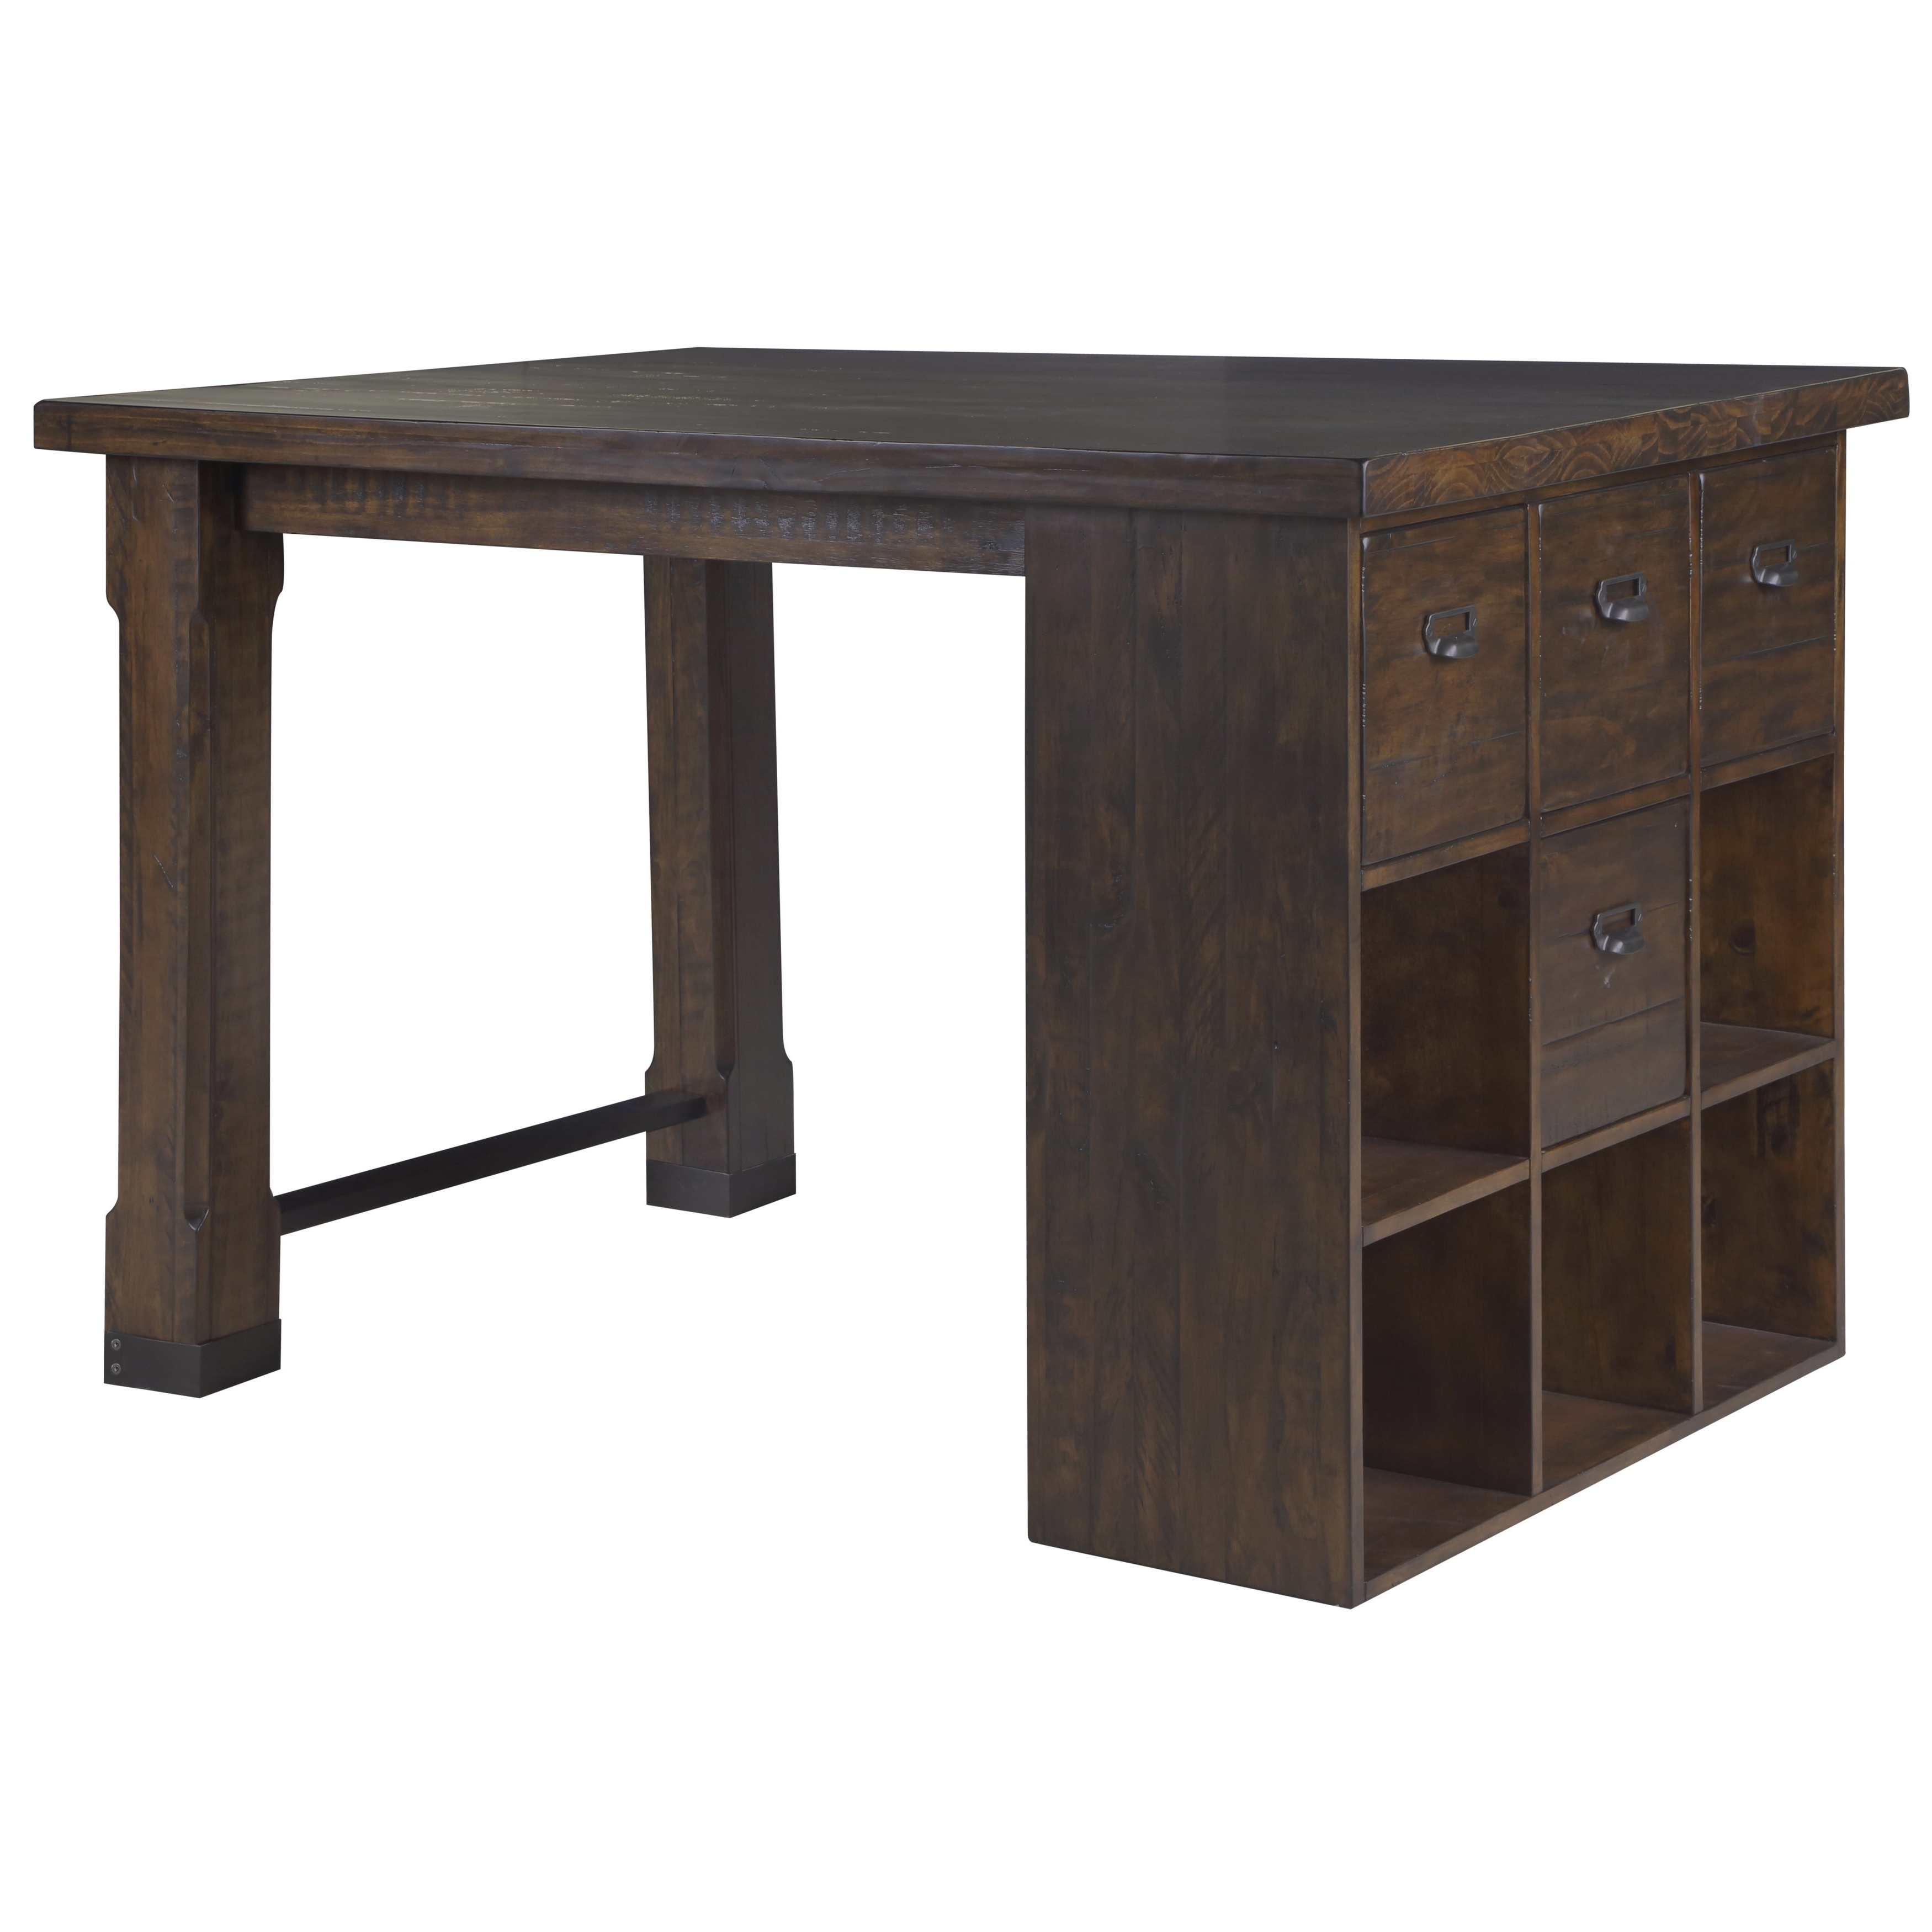 Shop Silver Orchid Bowers Asymmetrical Counter Height Desk With Cube Intended For Widely Used Aged Iron Cube Tables (View 15 of 20)